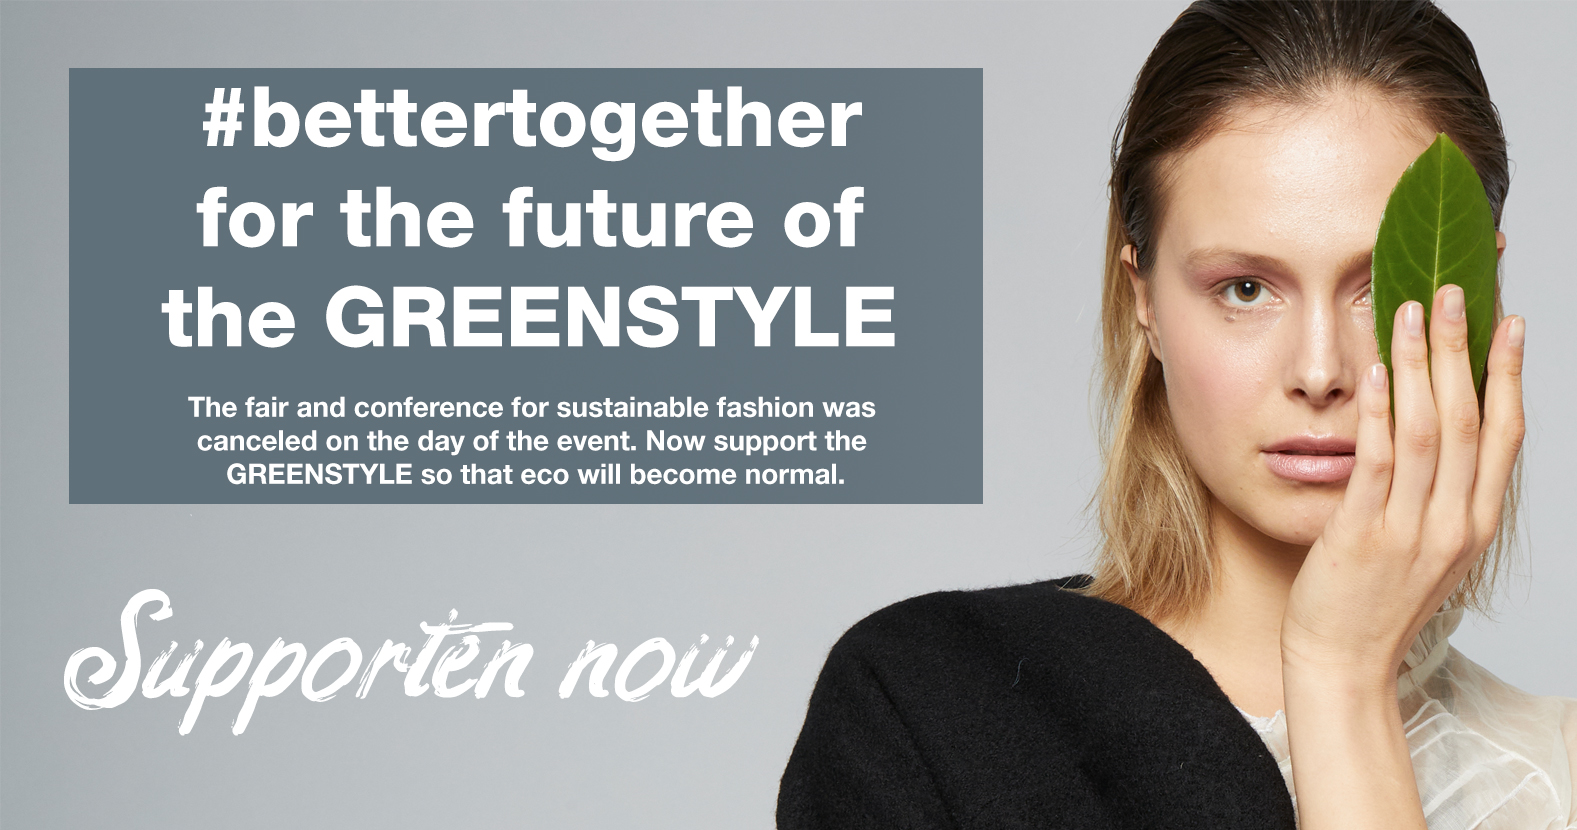 #bettertogether: Save the future of GREENSTYLE